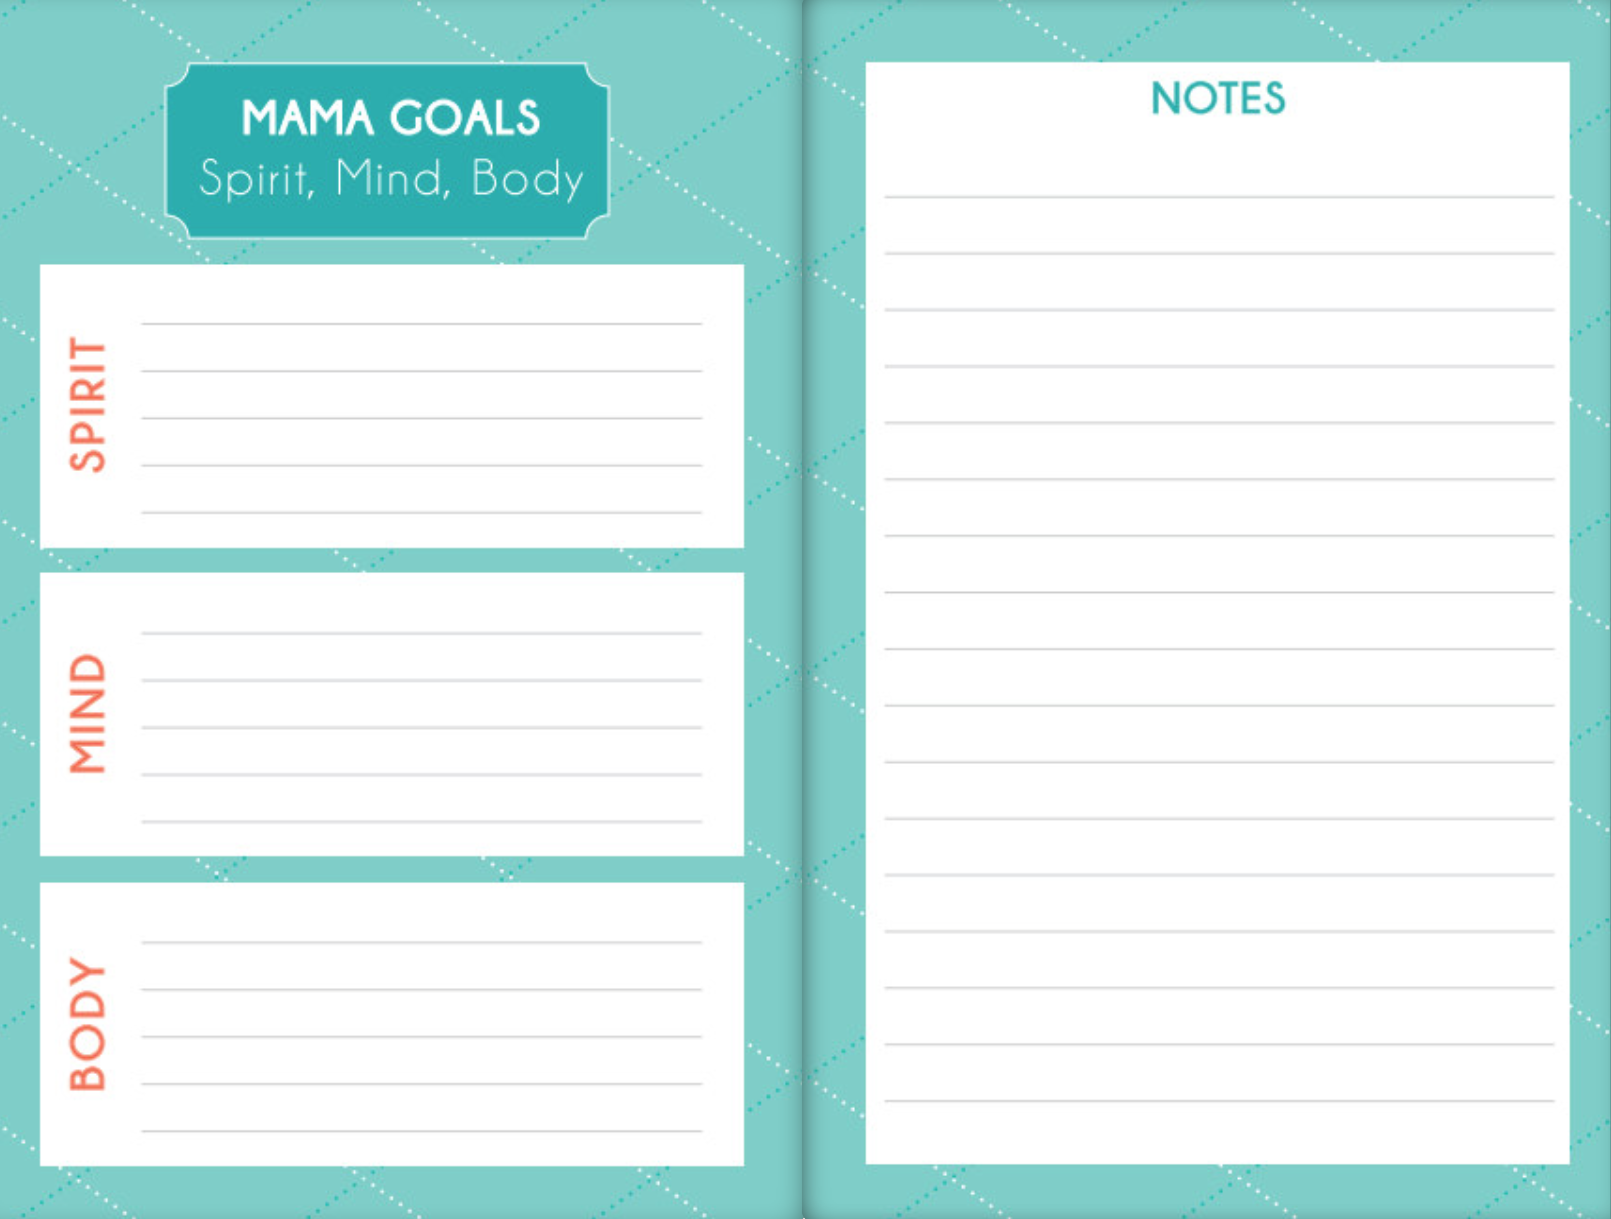 Mama Goals and Notes Photo.png